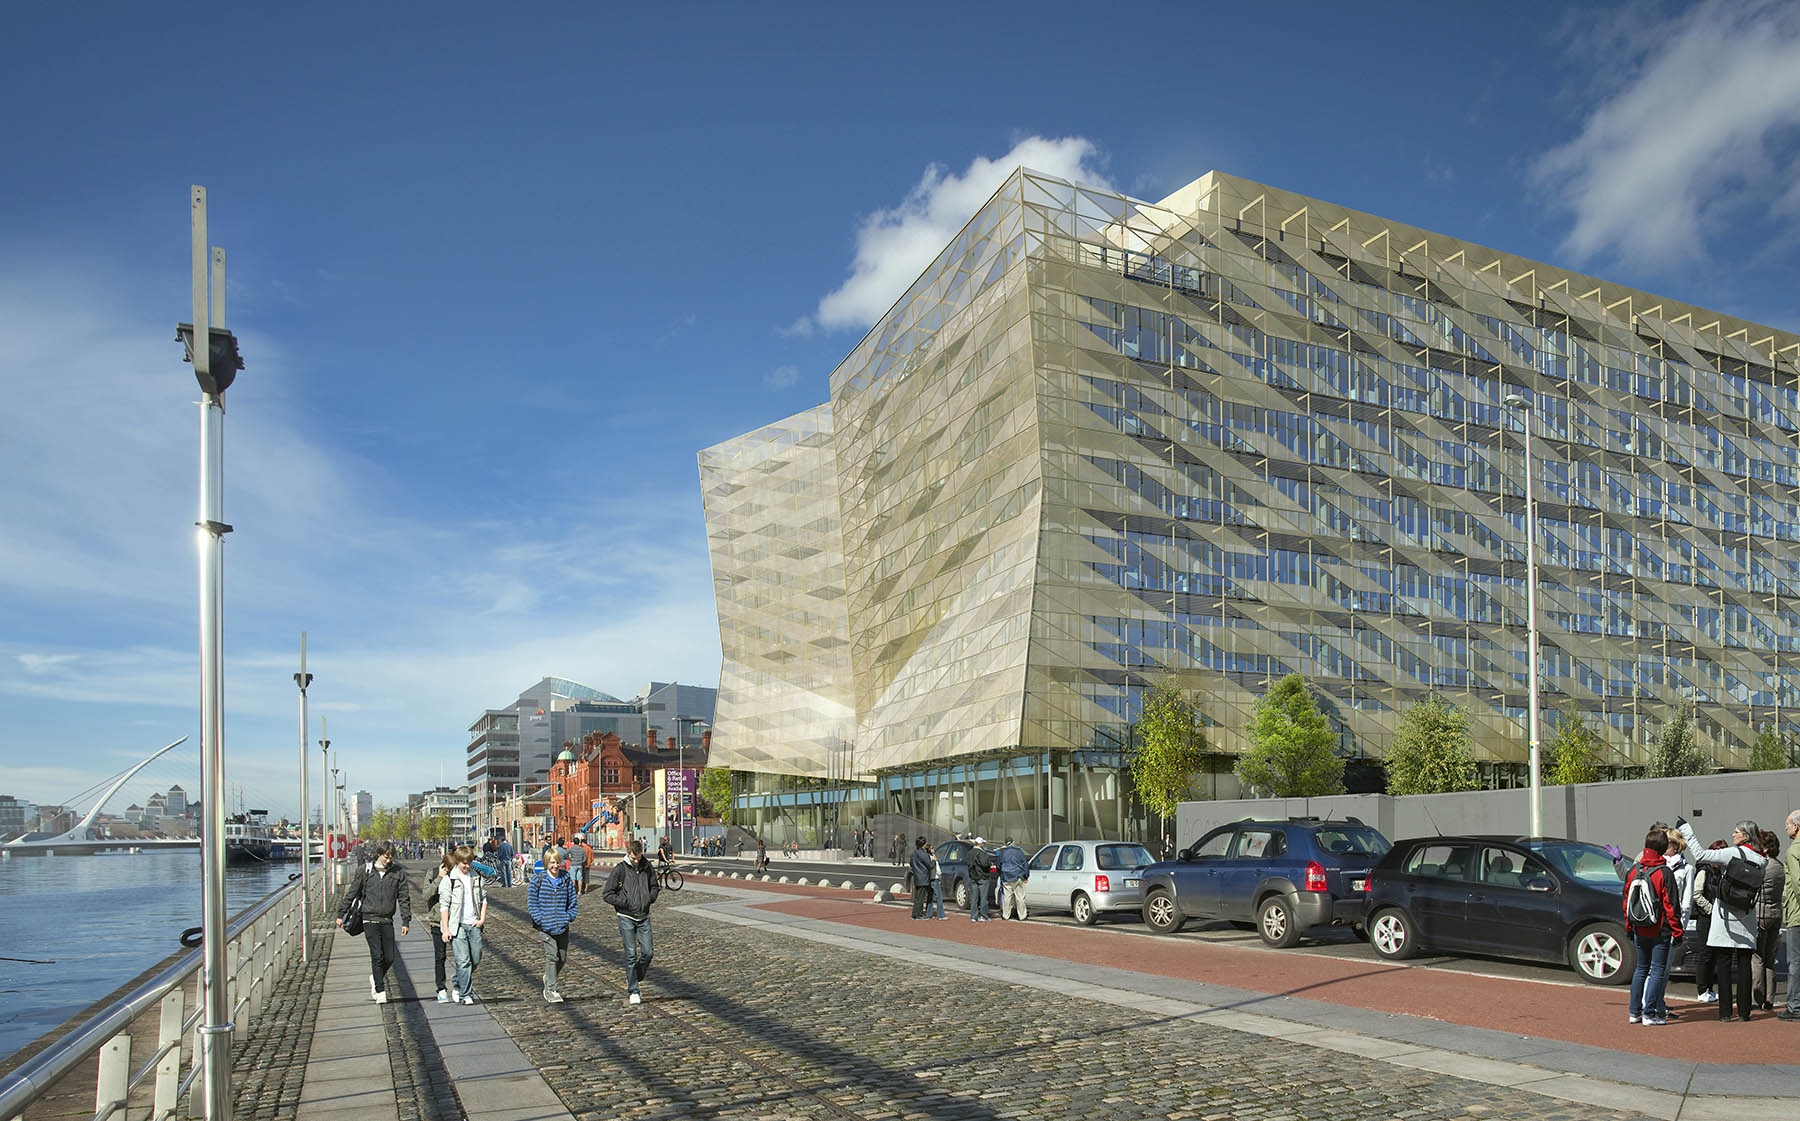 CENTRAL BANK OF IRELAND 2